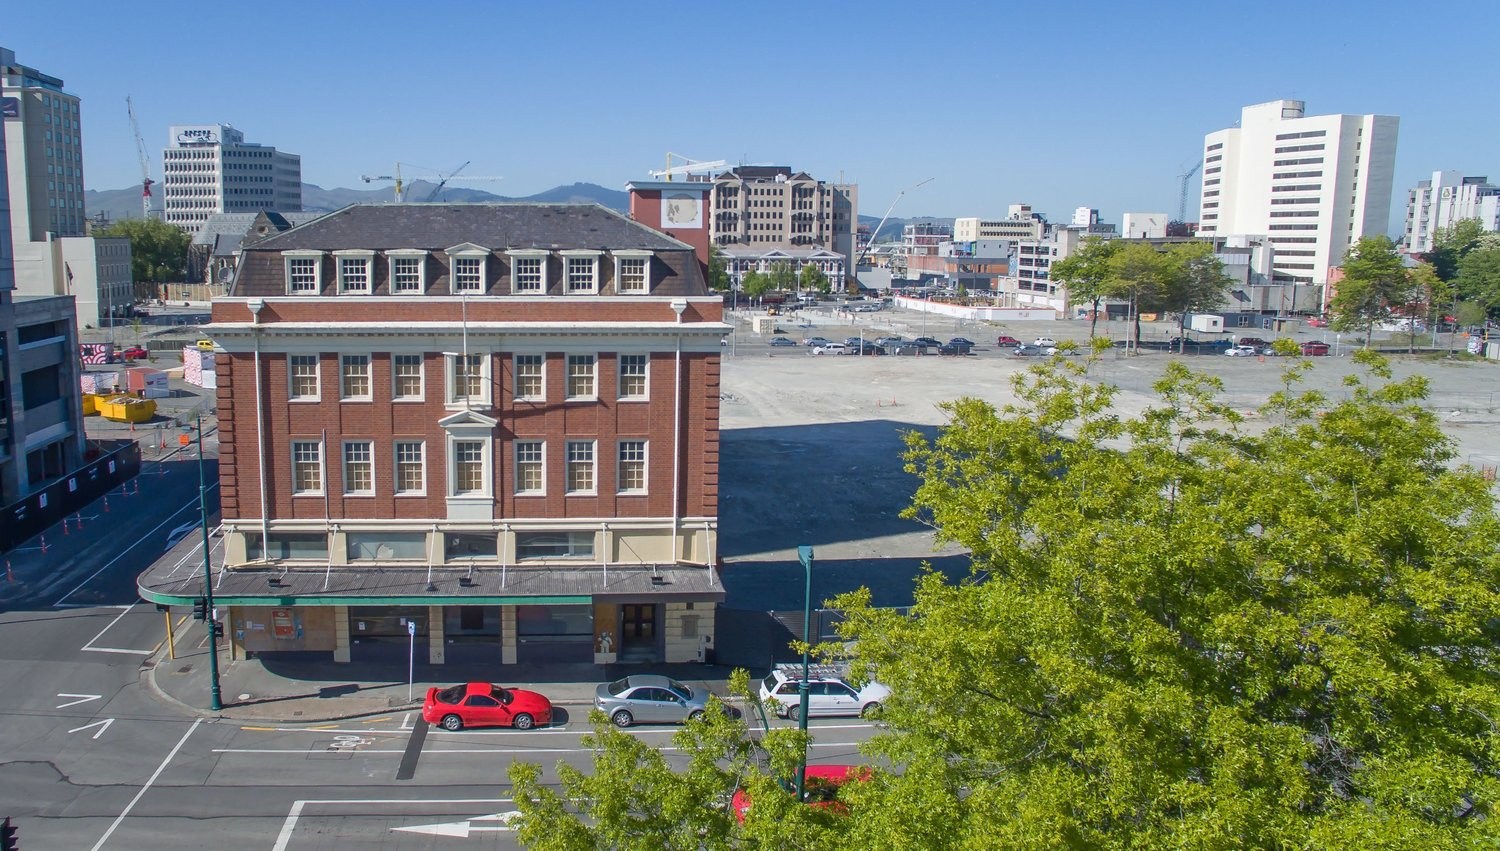 779 colombo studio d4 true commercial 779 colombo st2c chch elevated view malvernweather Image collections